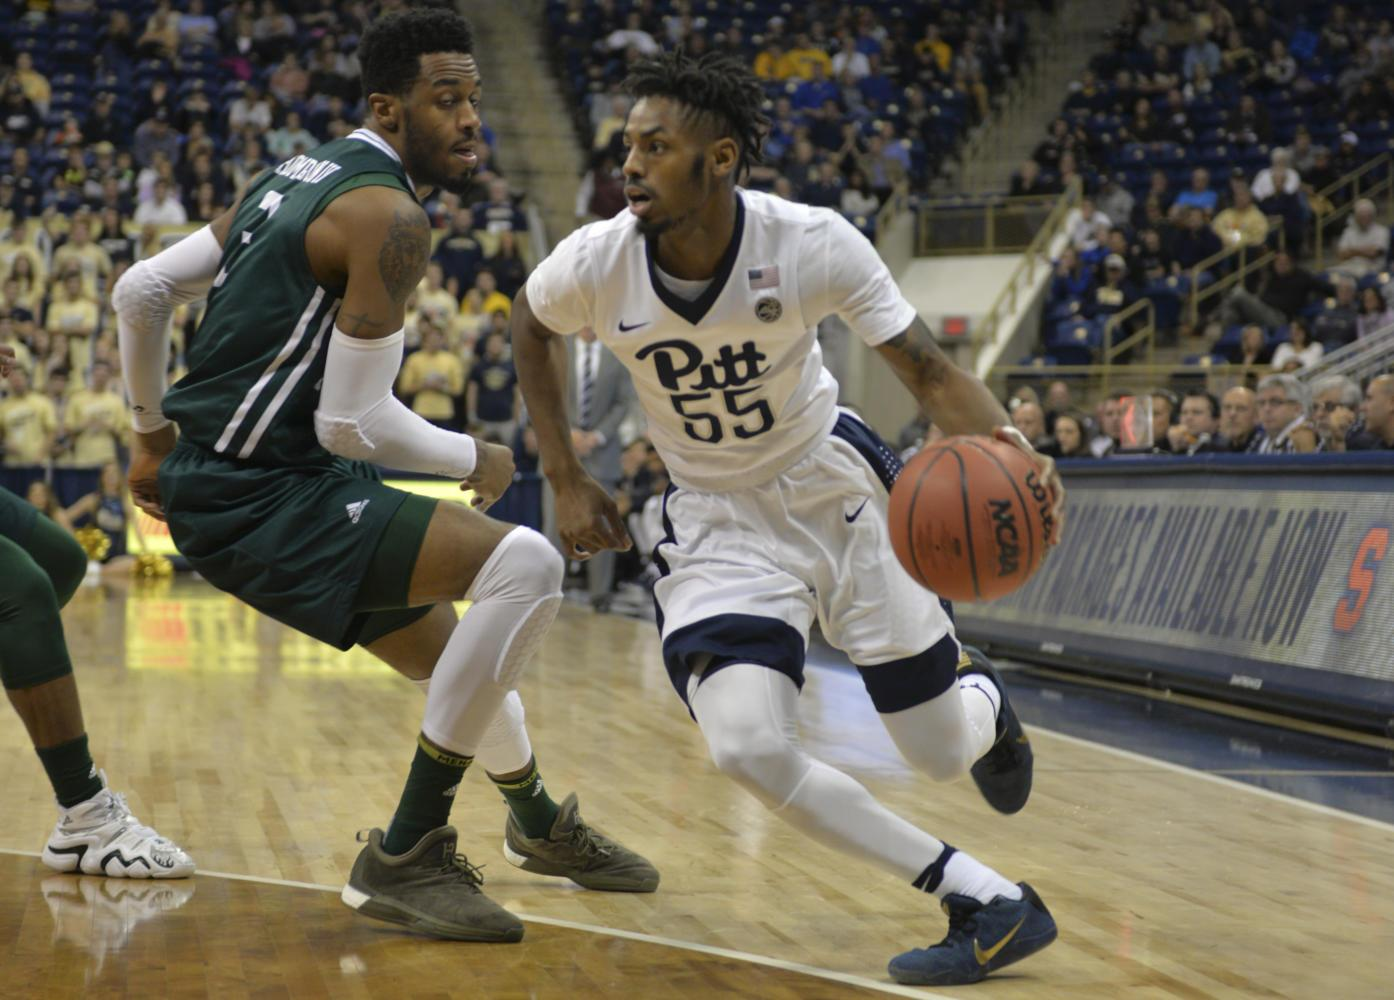 Redshirt senior guard Jonathan Milligan saved the Panthers from defeat as he scored to take the lead with 51.7 seconds remaining in the game. (TPN File Photo)